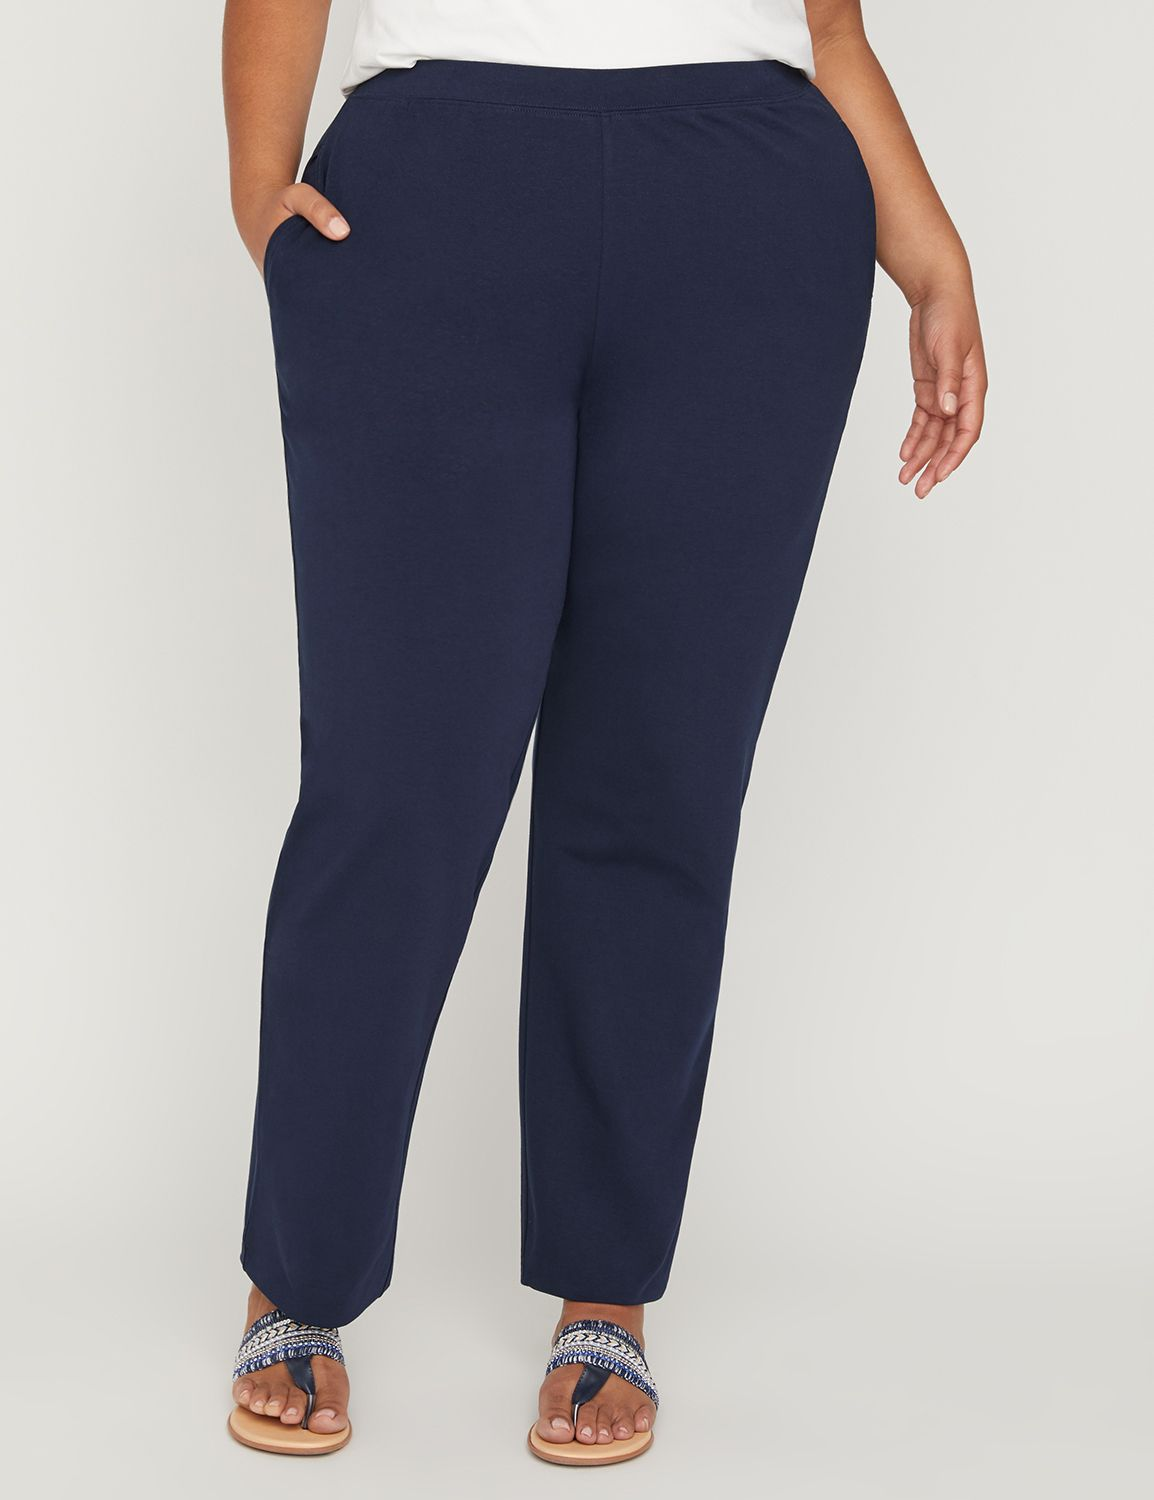 Suprema Knit Pant (Classic Colors) Suprema Knit Pant (Classic Colors) MP-300009675